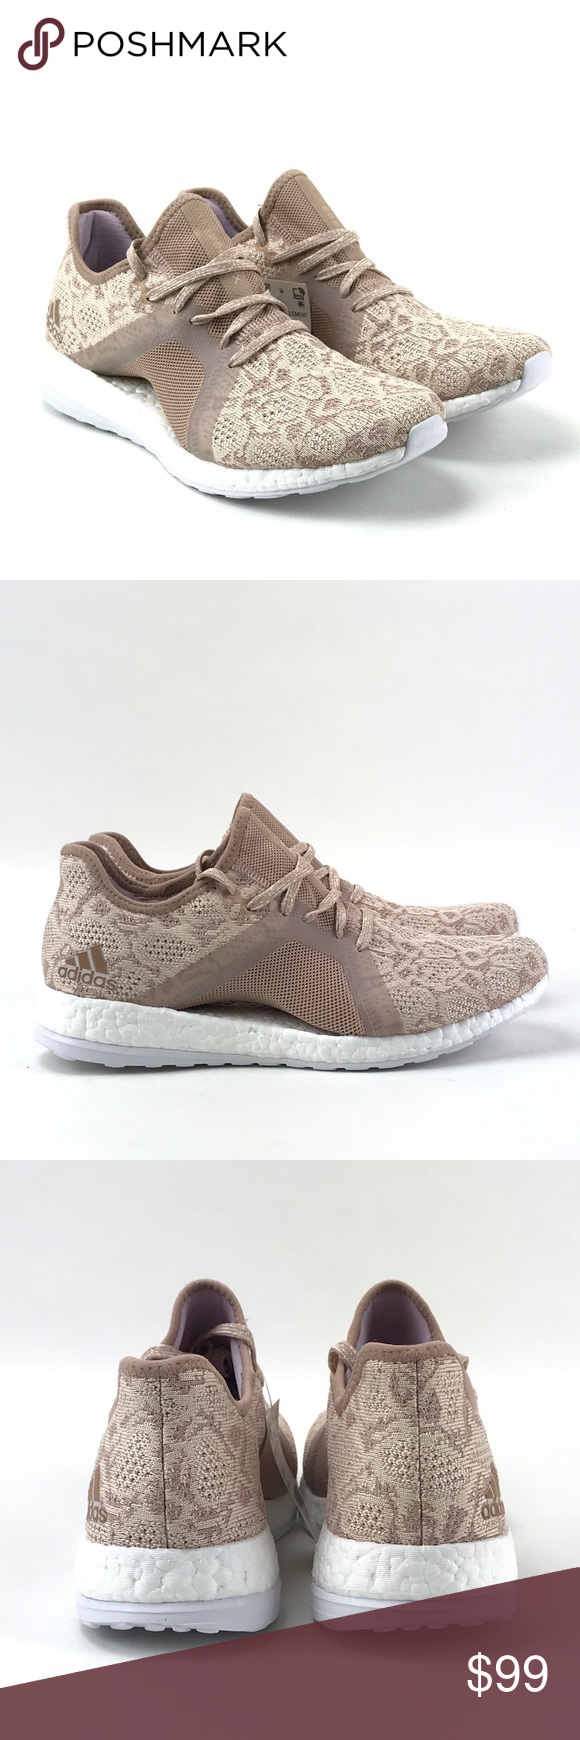 49e0b89ad91b0 Adidas Womens Pure Boost X Element Ash Pearl Shoes Adidas Womens Pure Boost  X Element Ash Pearl   Hi Res Blue BB6088 Shoes New without box.